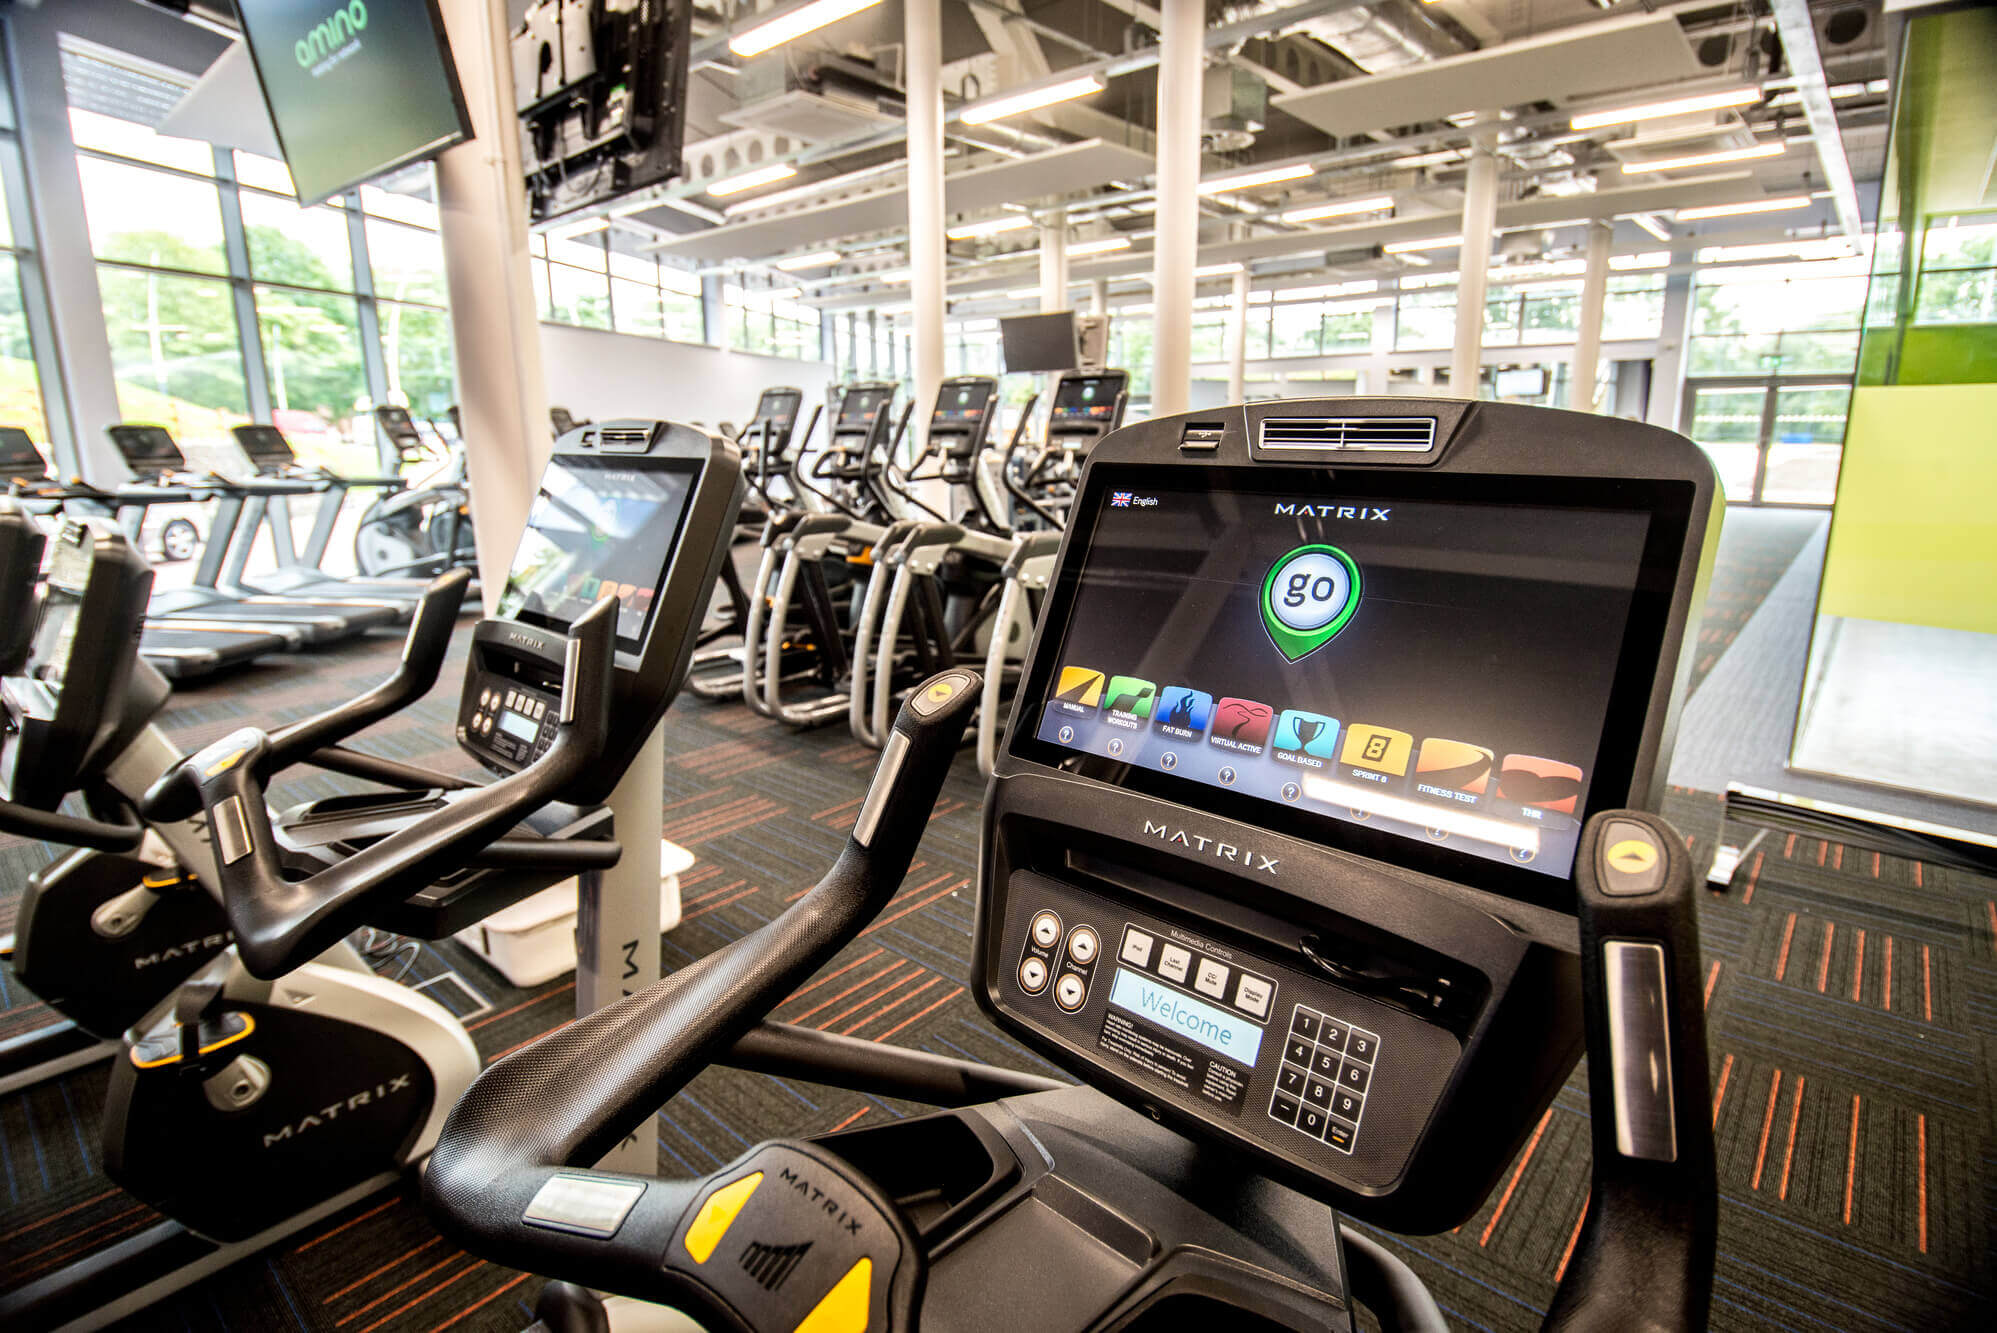 Fitness machines in the Fitness Suite